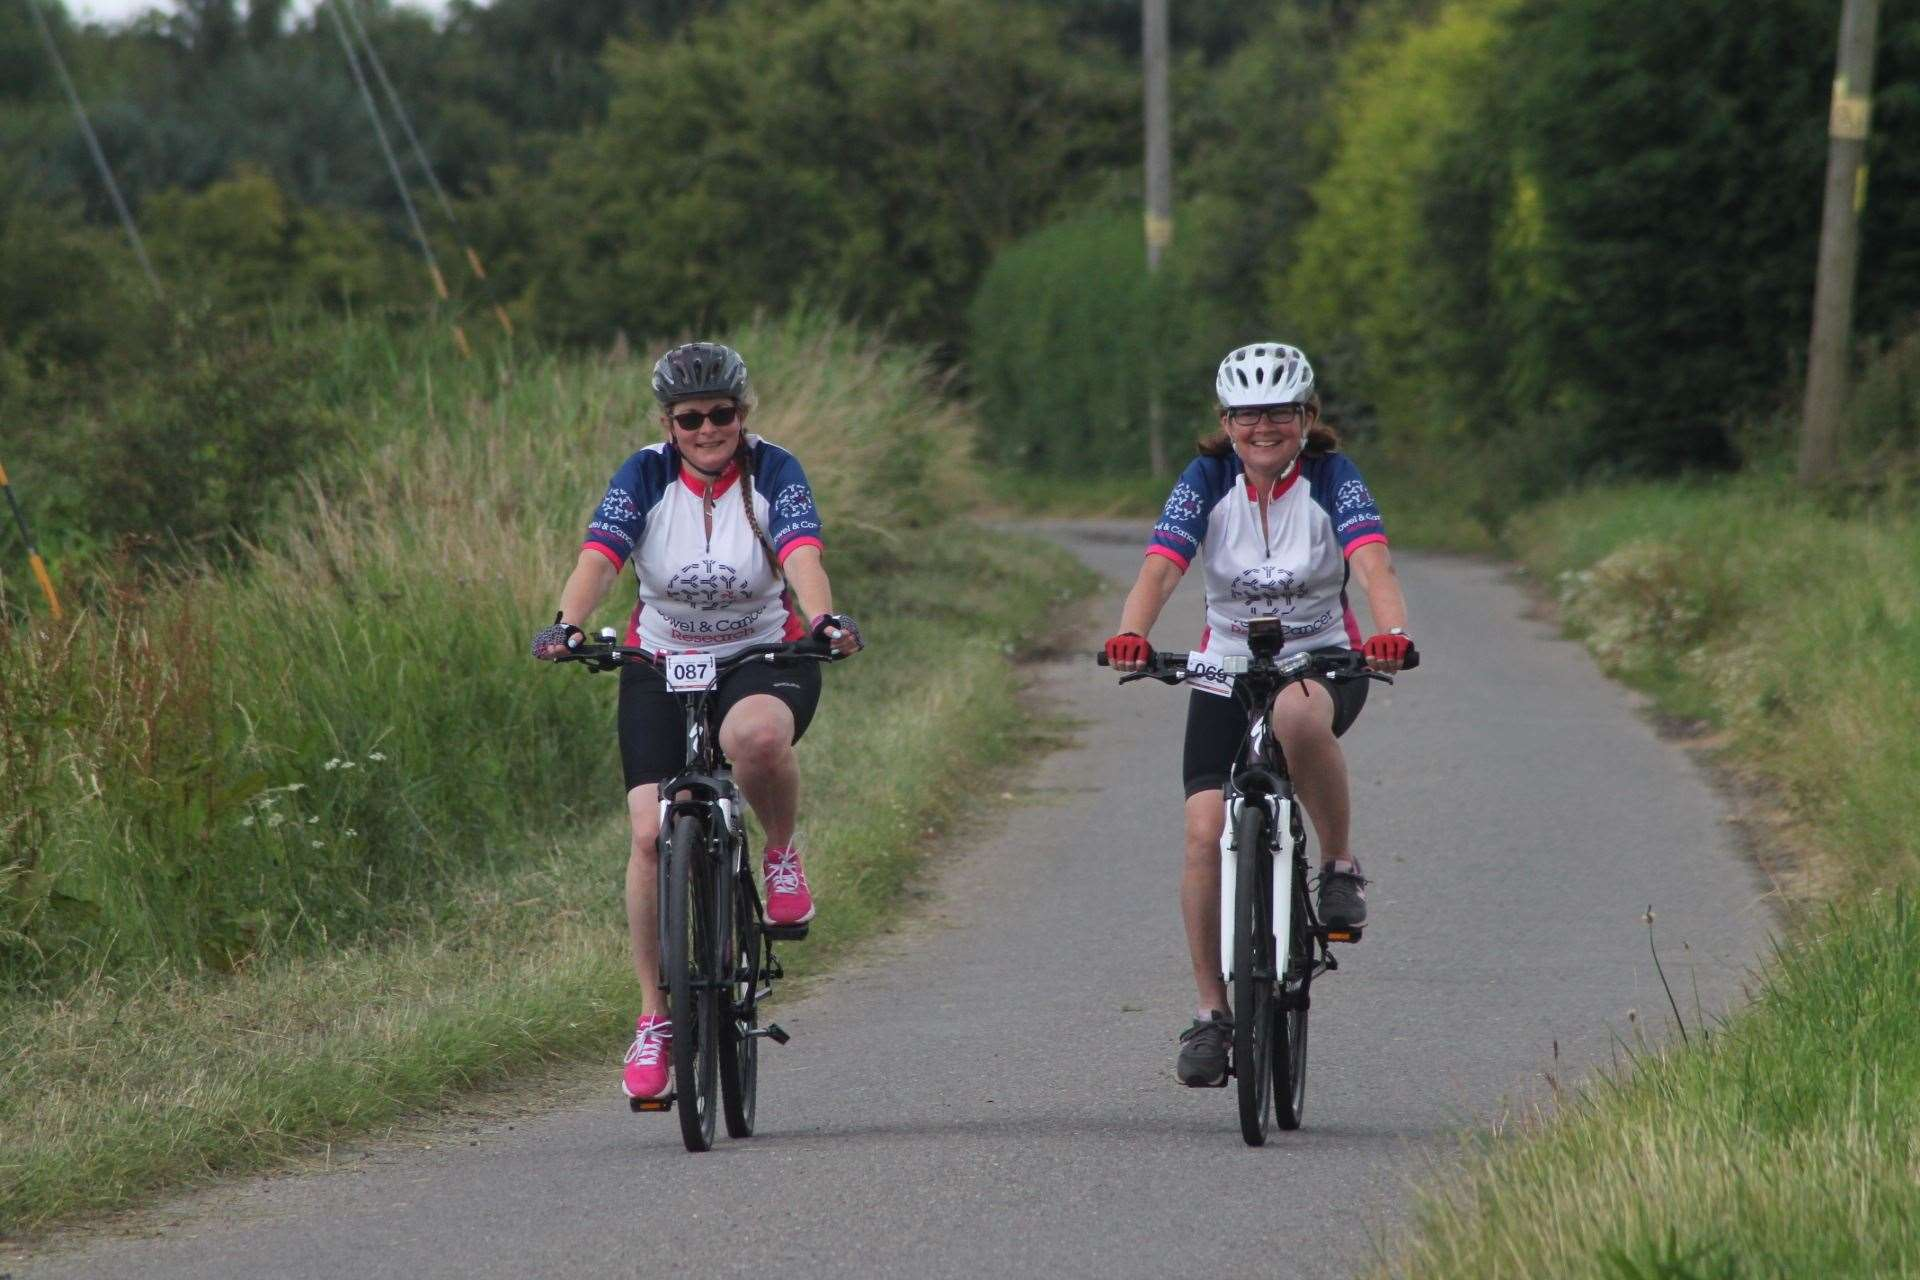 Kay, left, with Jacqui on their bikes